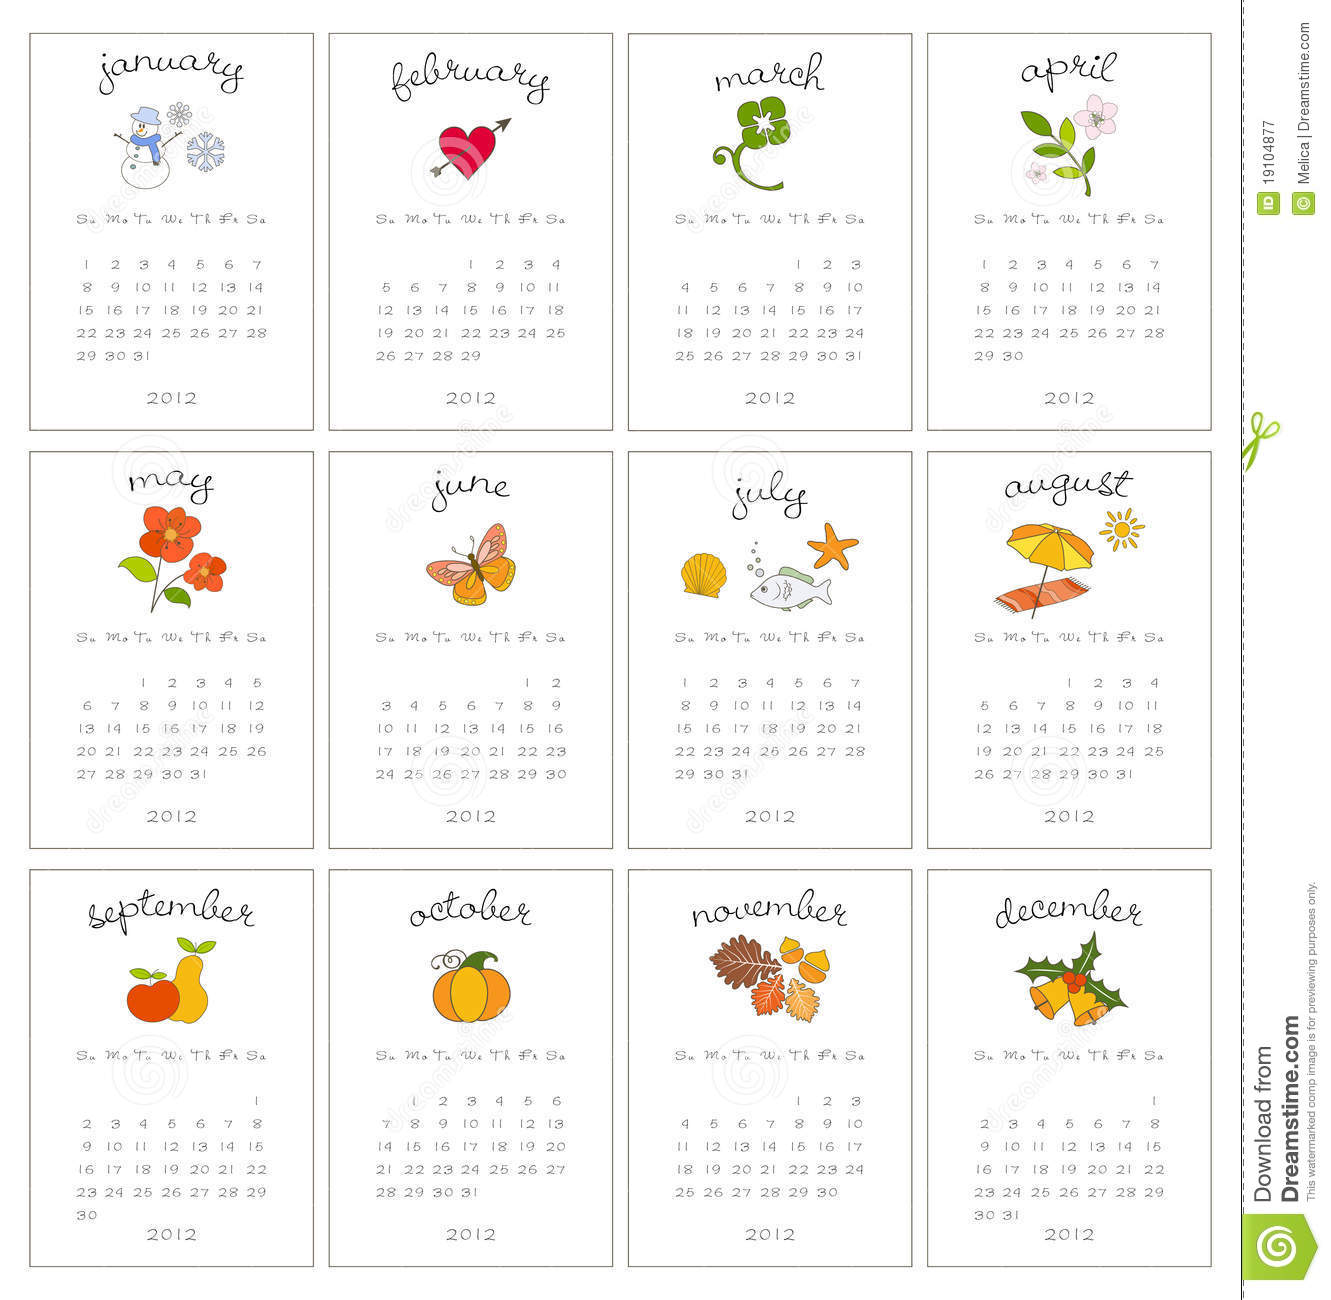 Decorative Monthly Calendars Royalty Free Stock Photography Image 19104877